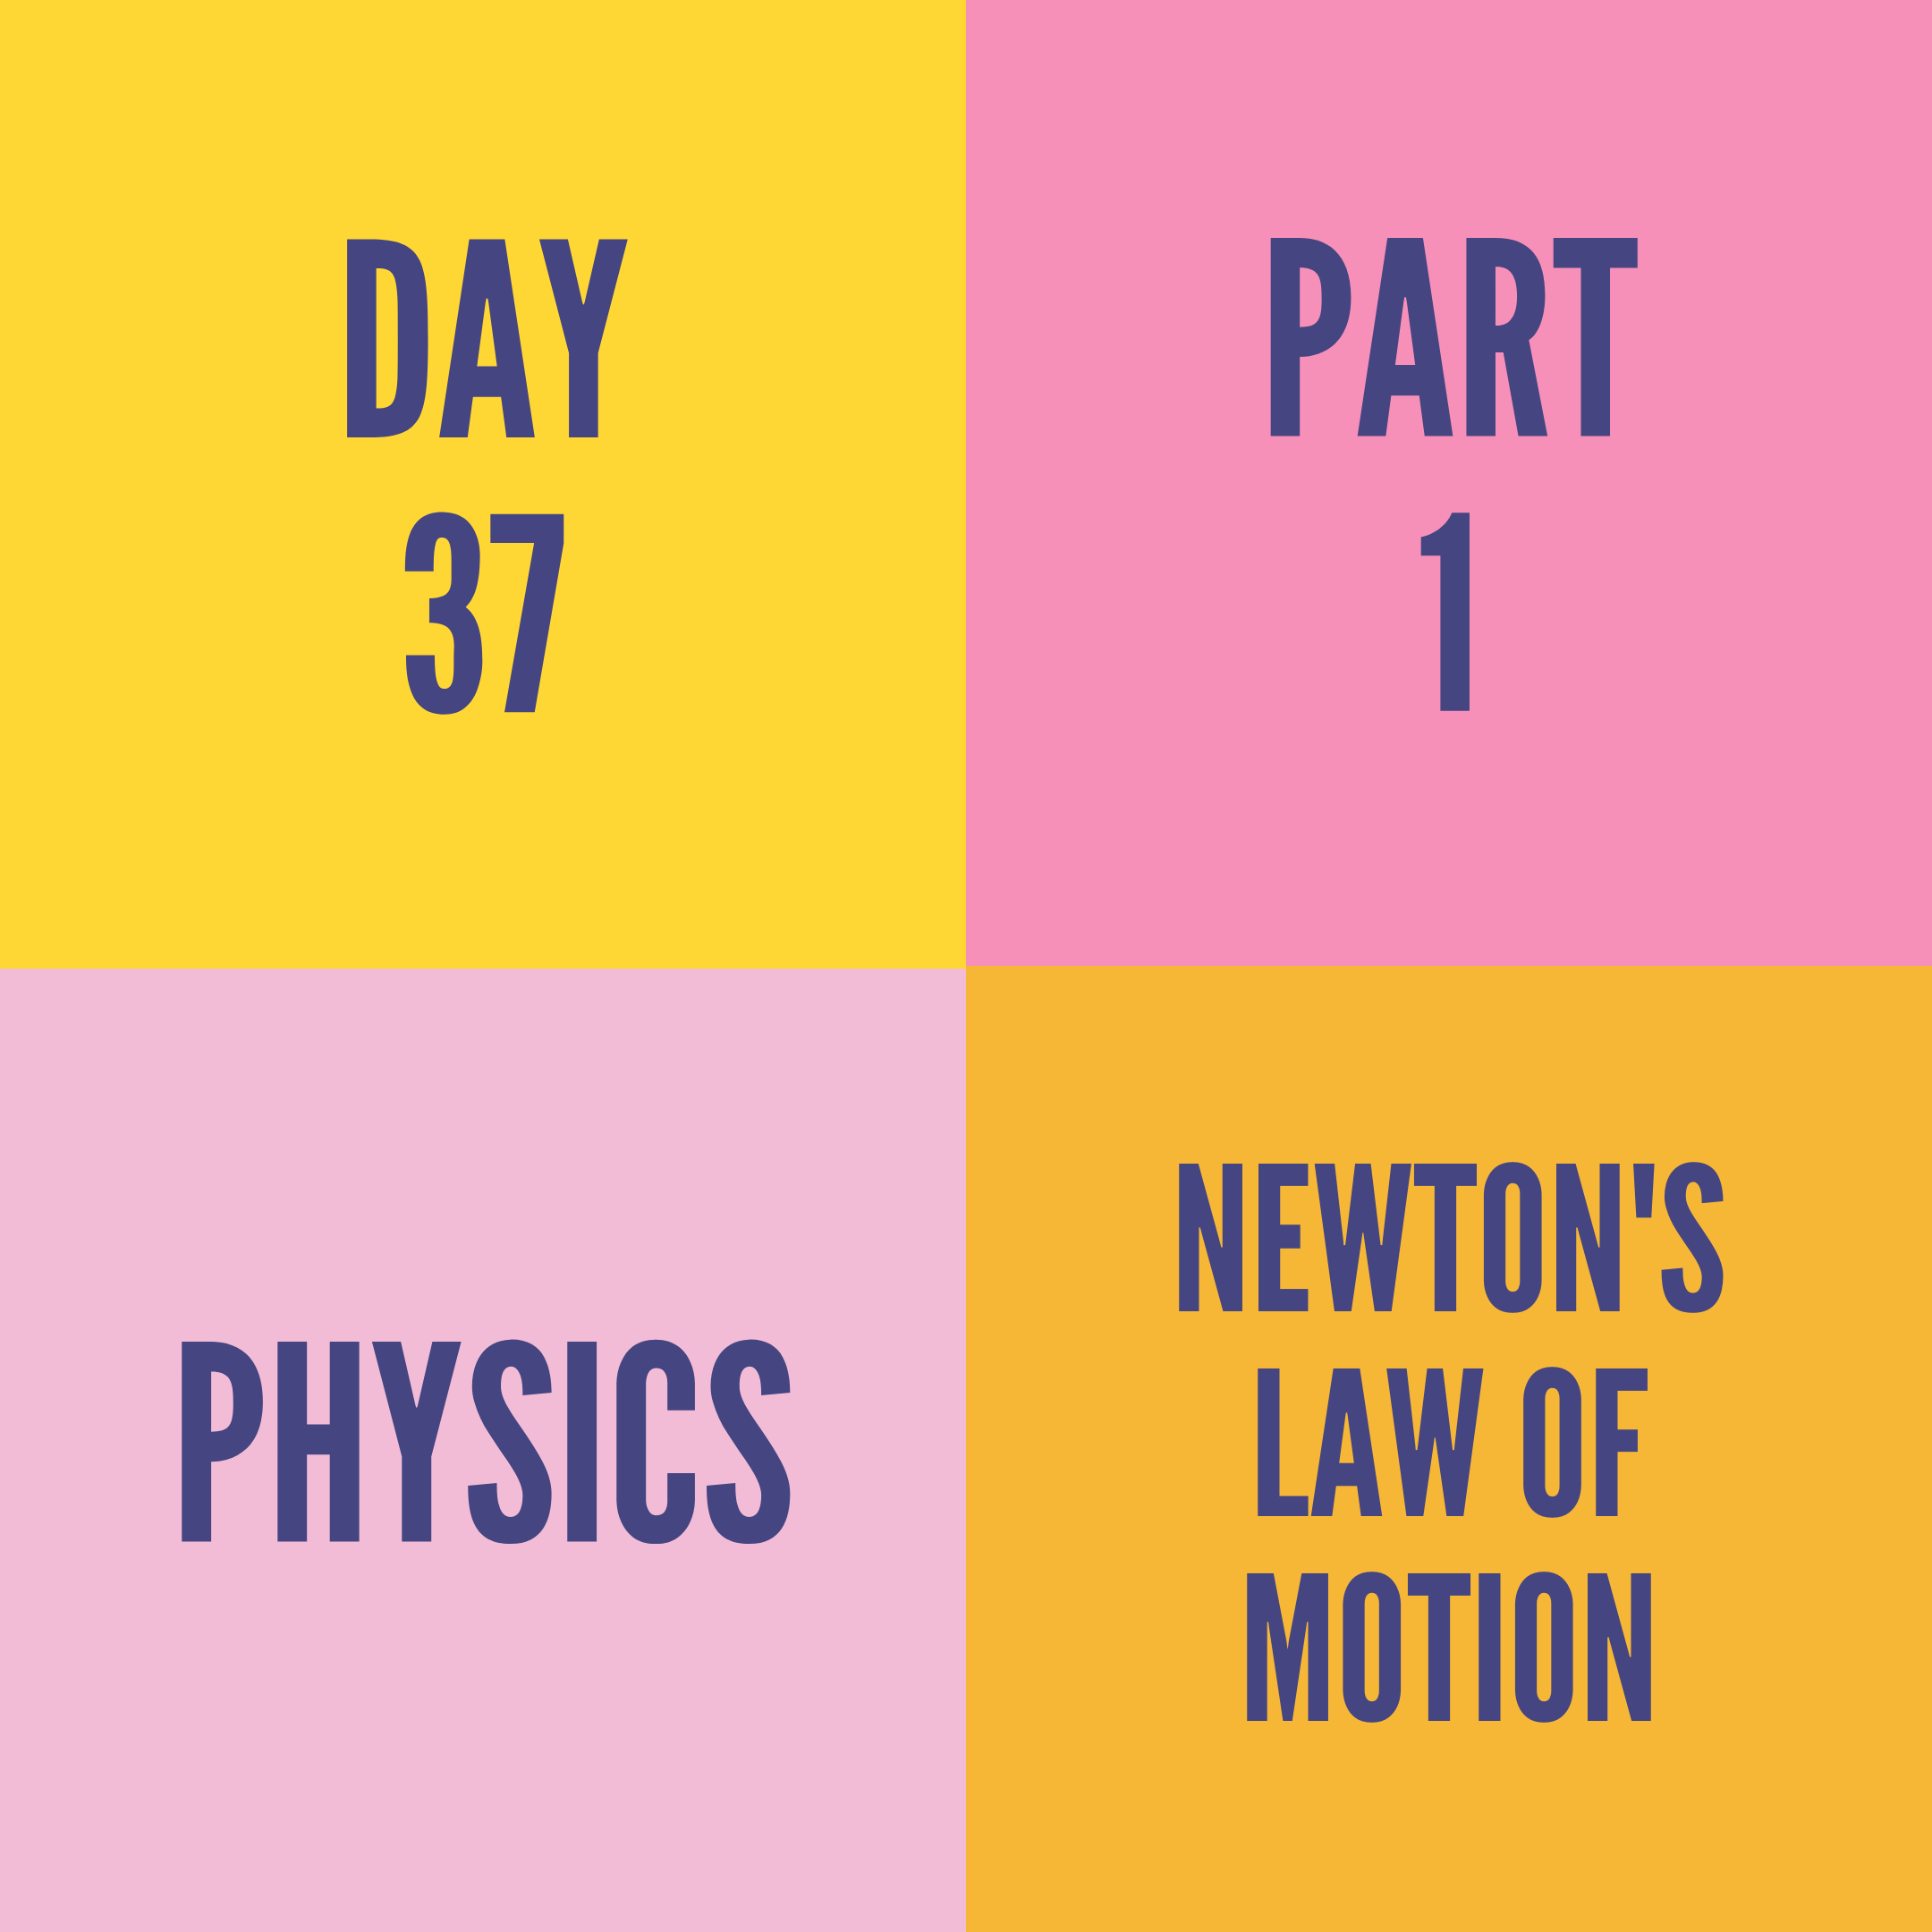 DAY-37 PART-1 NEWTON'S LAW OF MOTION